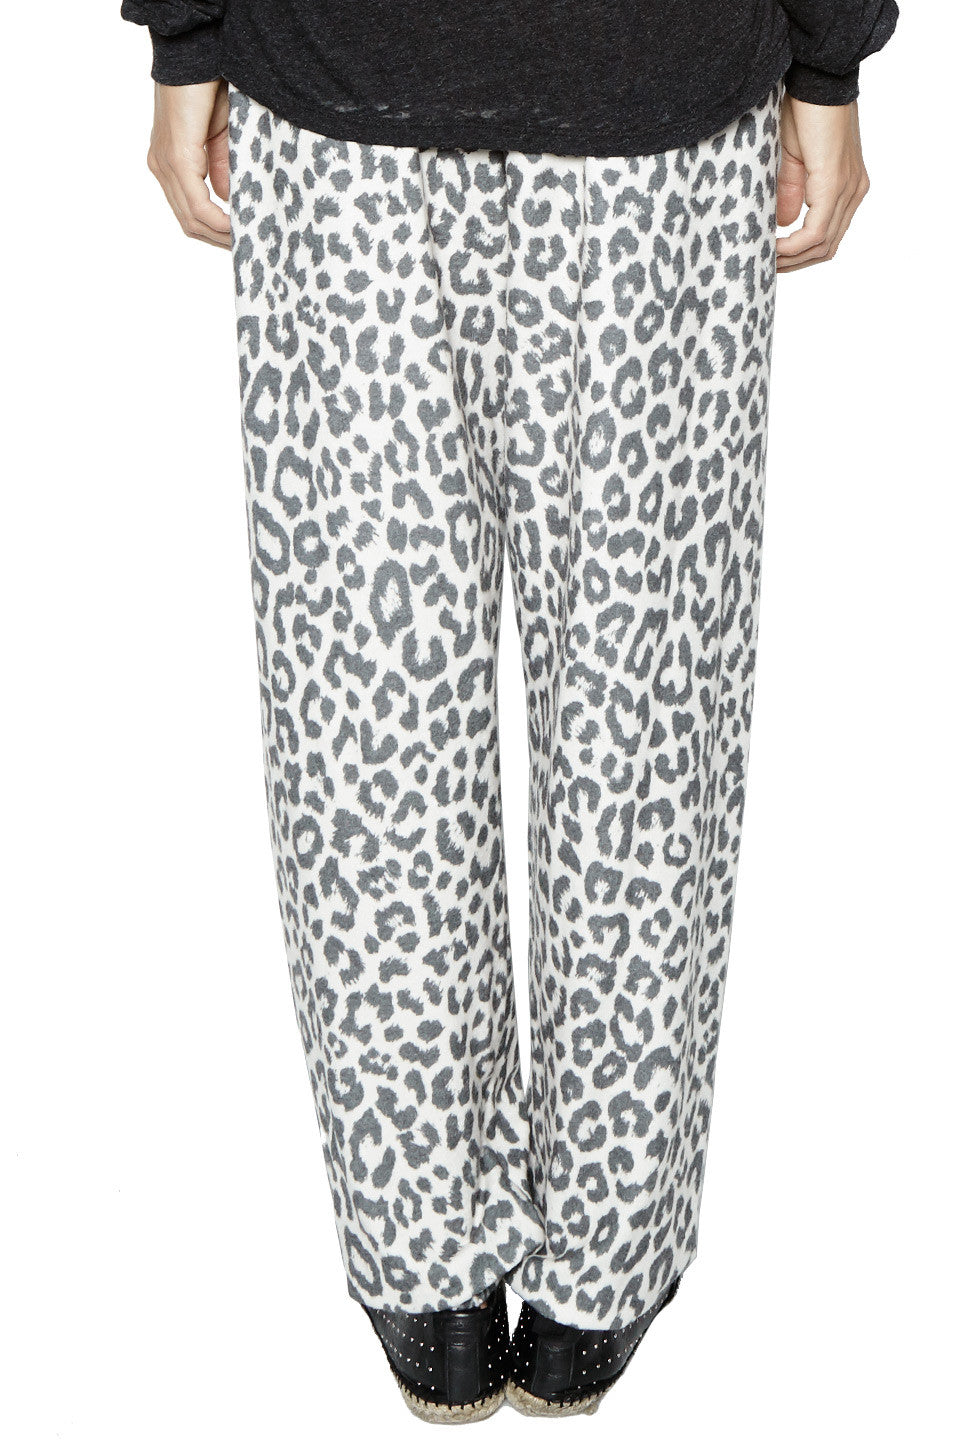 George Super Soft Sweatpant W/ Elastic in Leopard